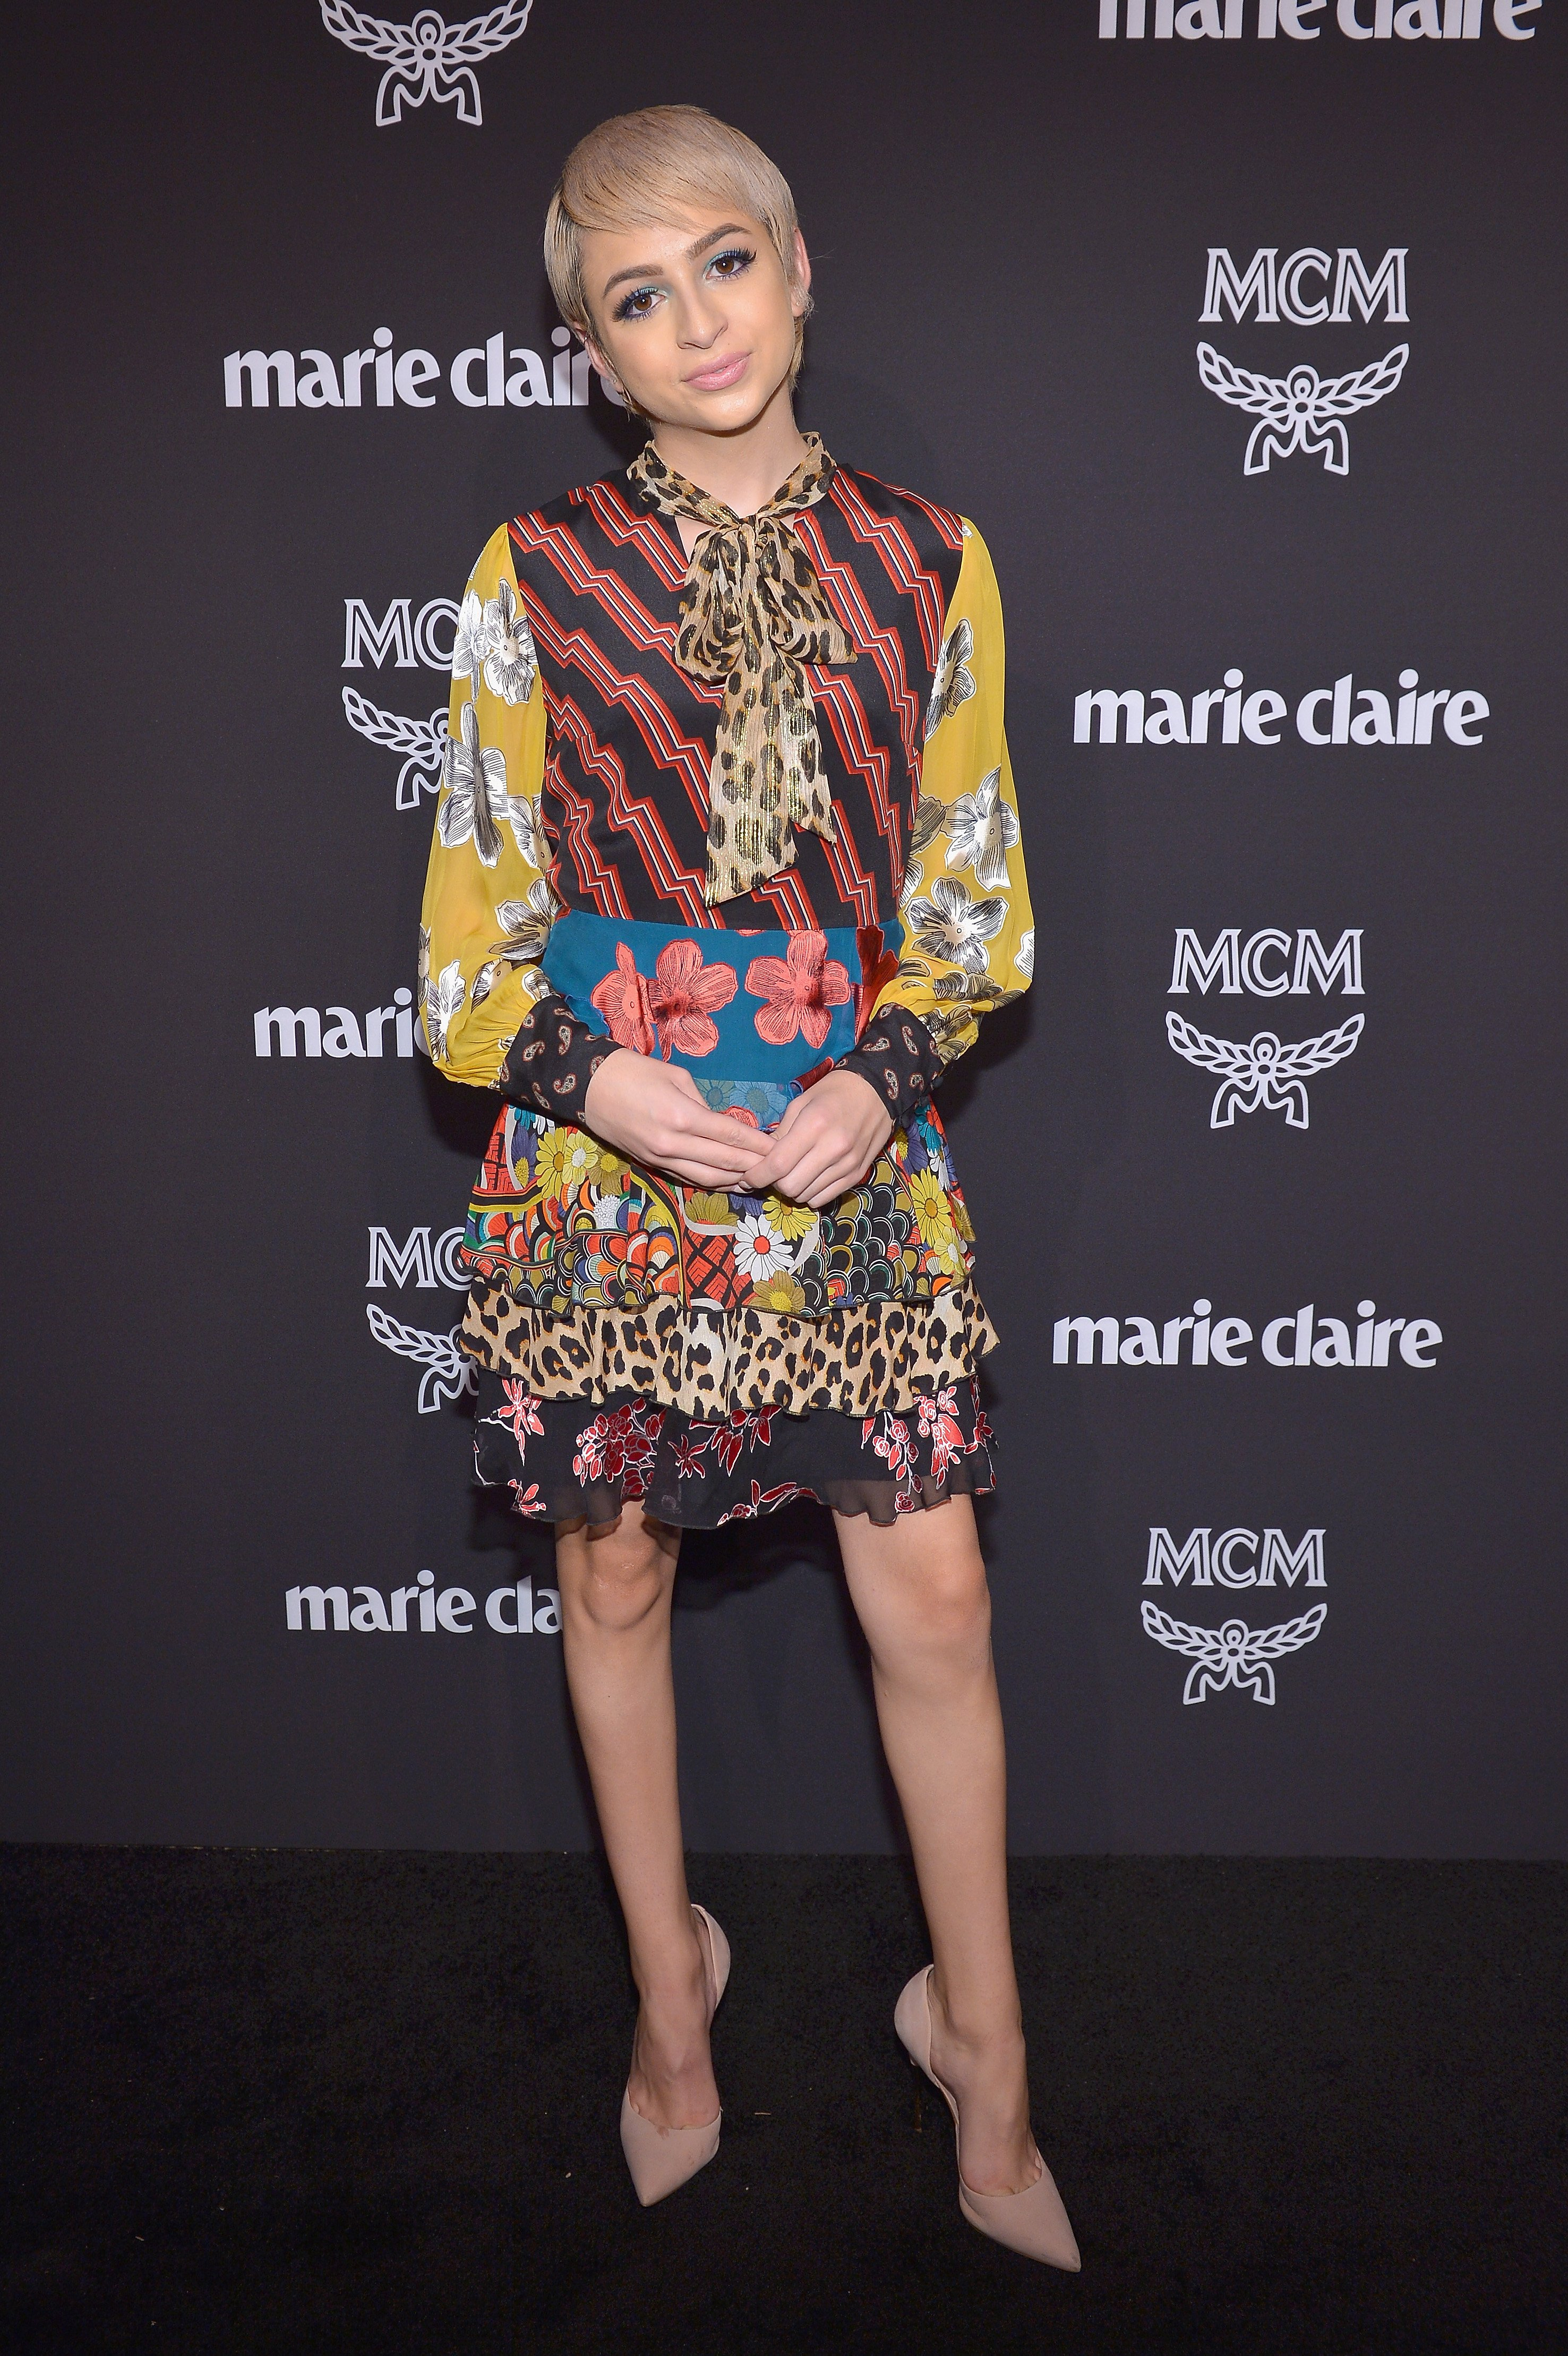 Josie Jay Totah attending MCM x Marie Claire Change Makers Event at Hills Penthouse in West Hollywood, California, in March 2019. | Image: Getty Images..